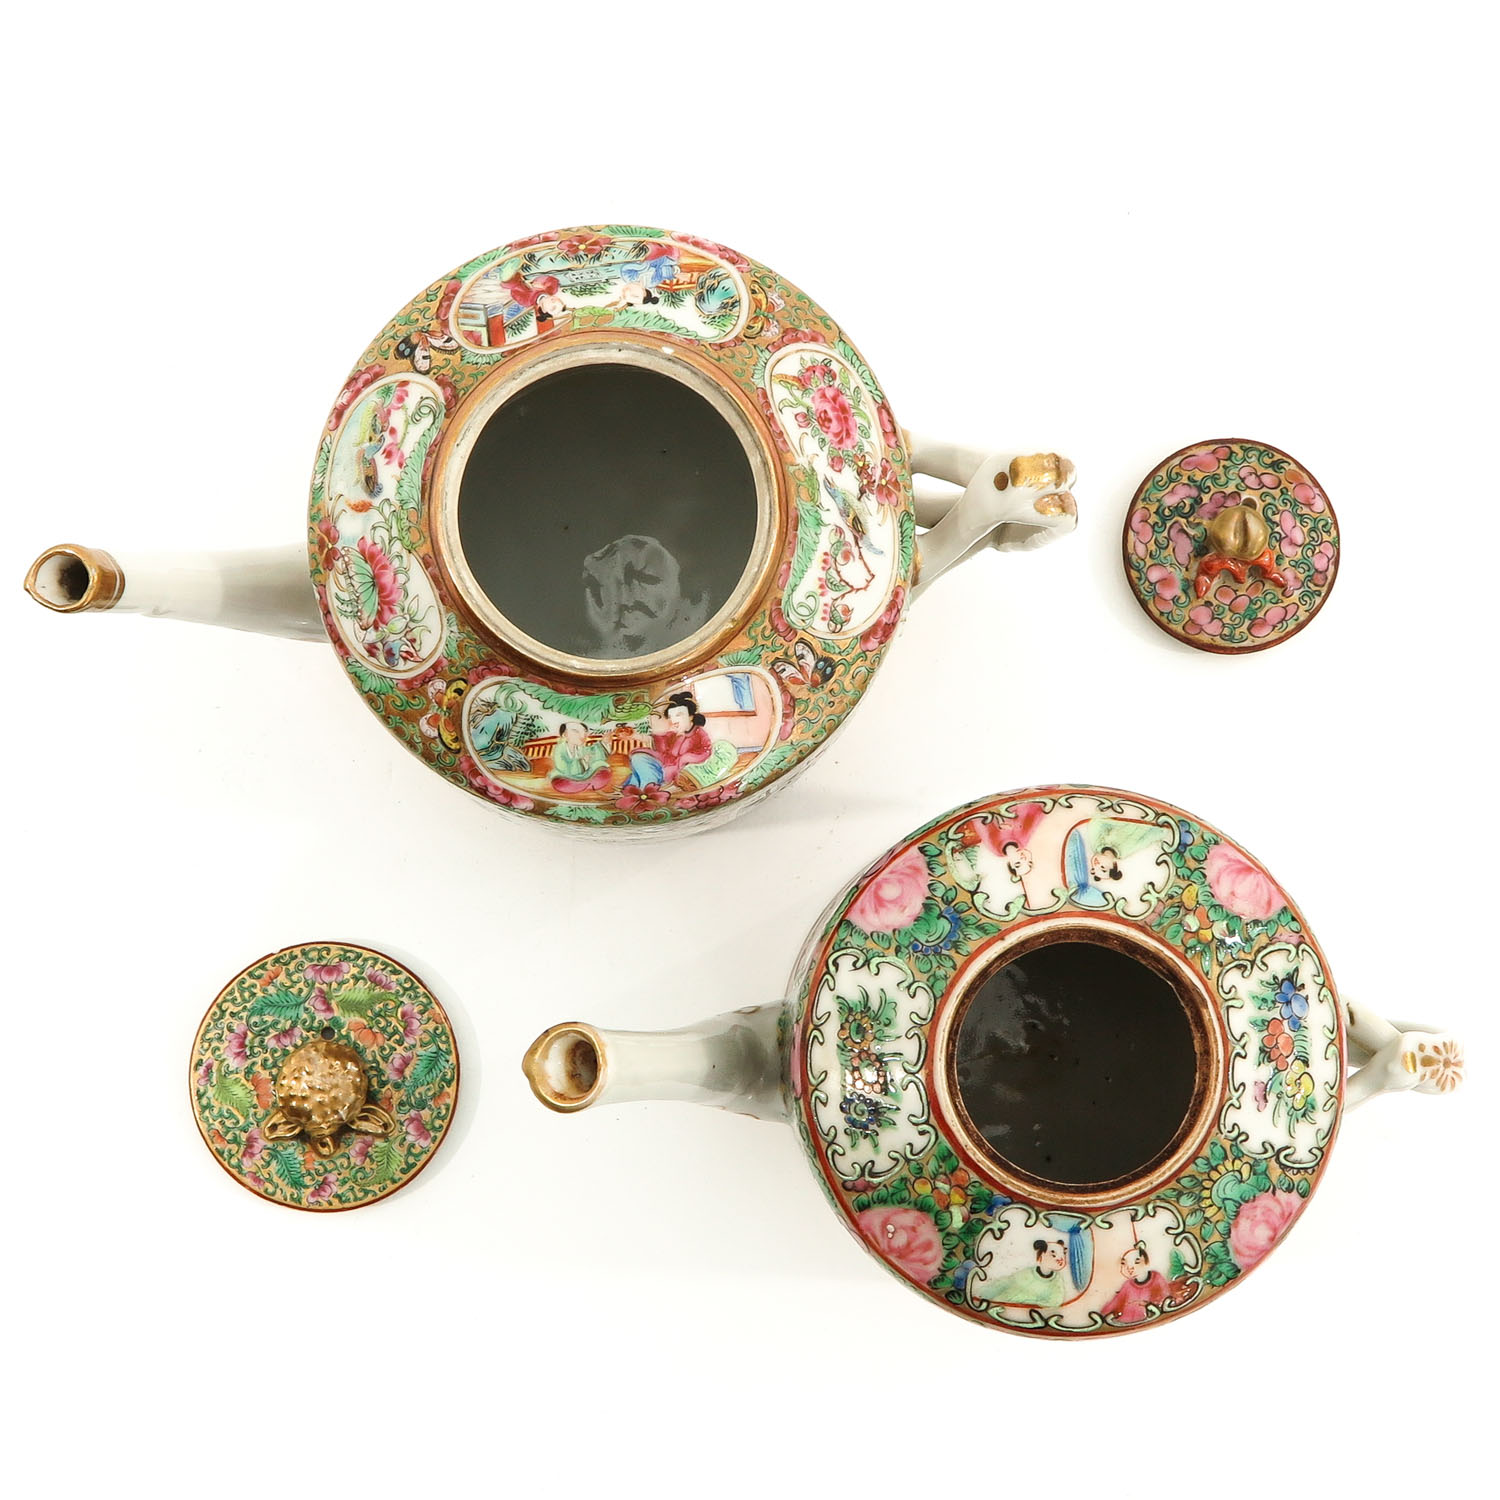 A Lot of 2 Cantonese Teapots - Image 5 of 9